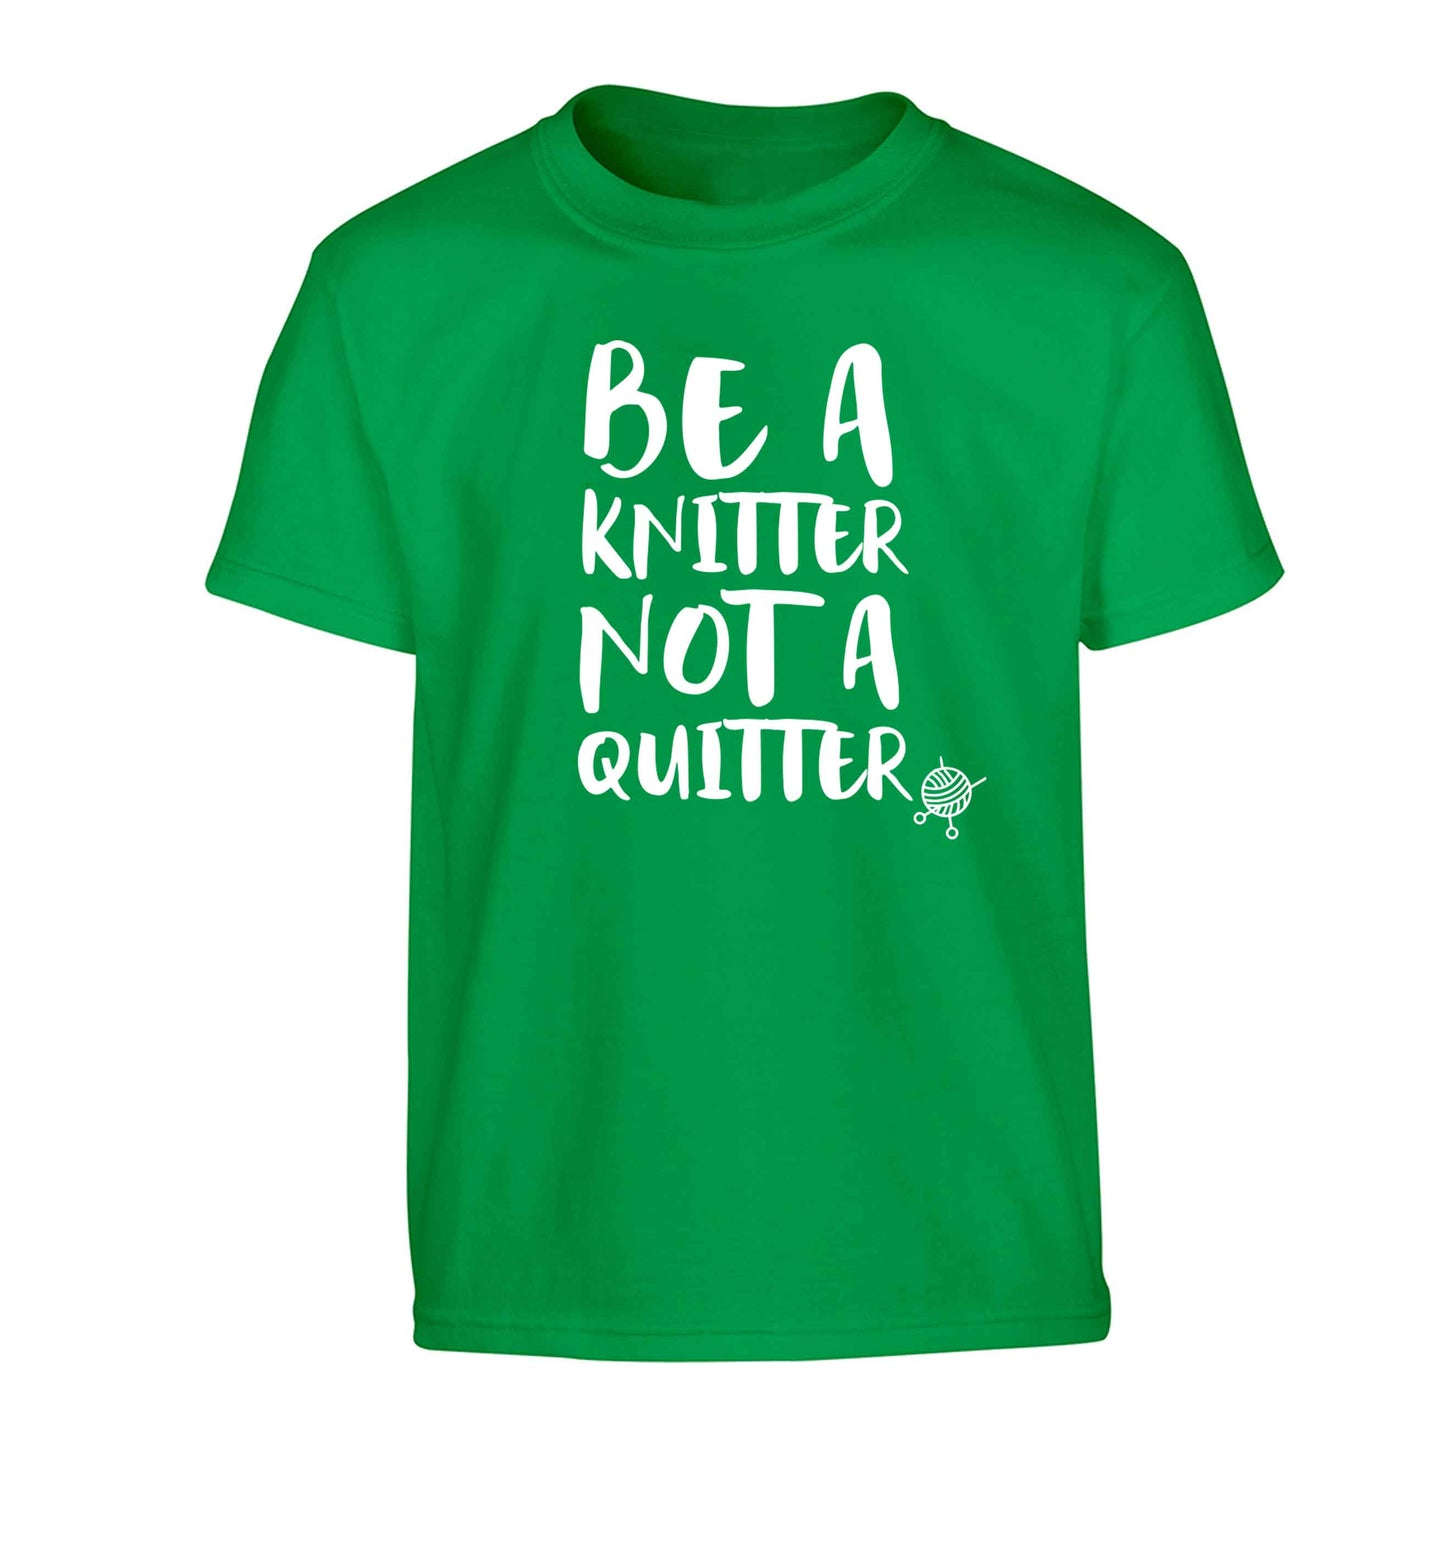 Be a knitter not a quitter Children's green Tshirt 12-13 Years